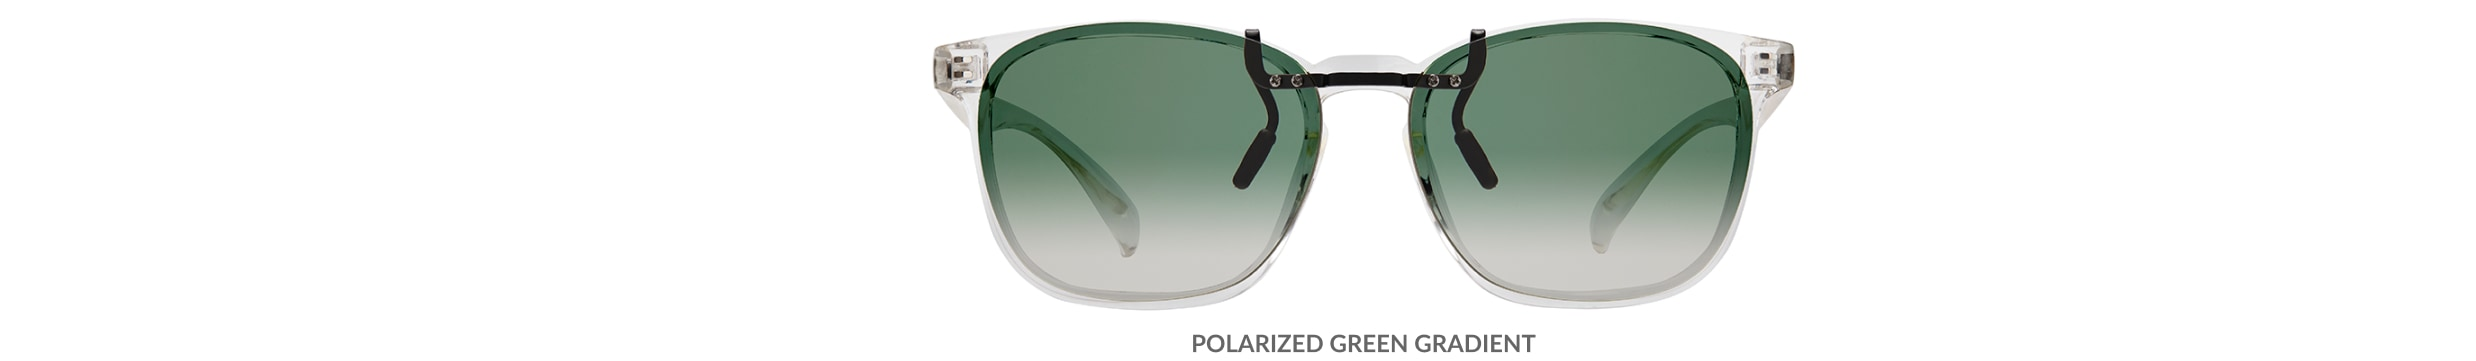 Custom clip-ons. Our polarized custom clip-ons reduce glare and are available for almost any frame. Each clip-on is specially cut to fit the frame with prices starting at just $3.95  (Compare to $50). Zenni square glasses #2020123 in clear, shown with gradient green polarized custom clip-on.